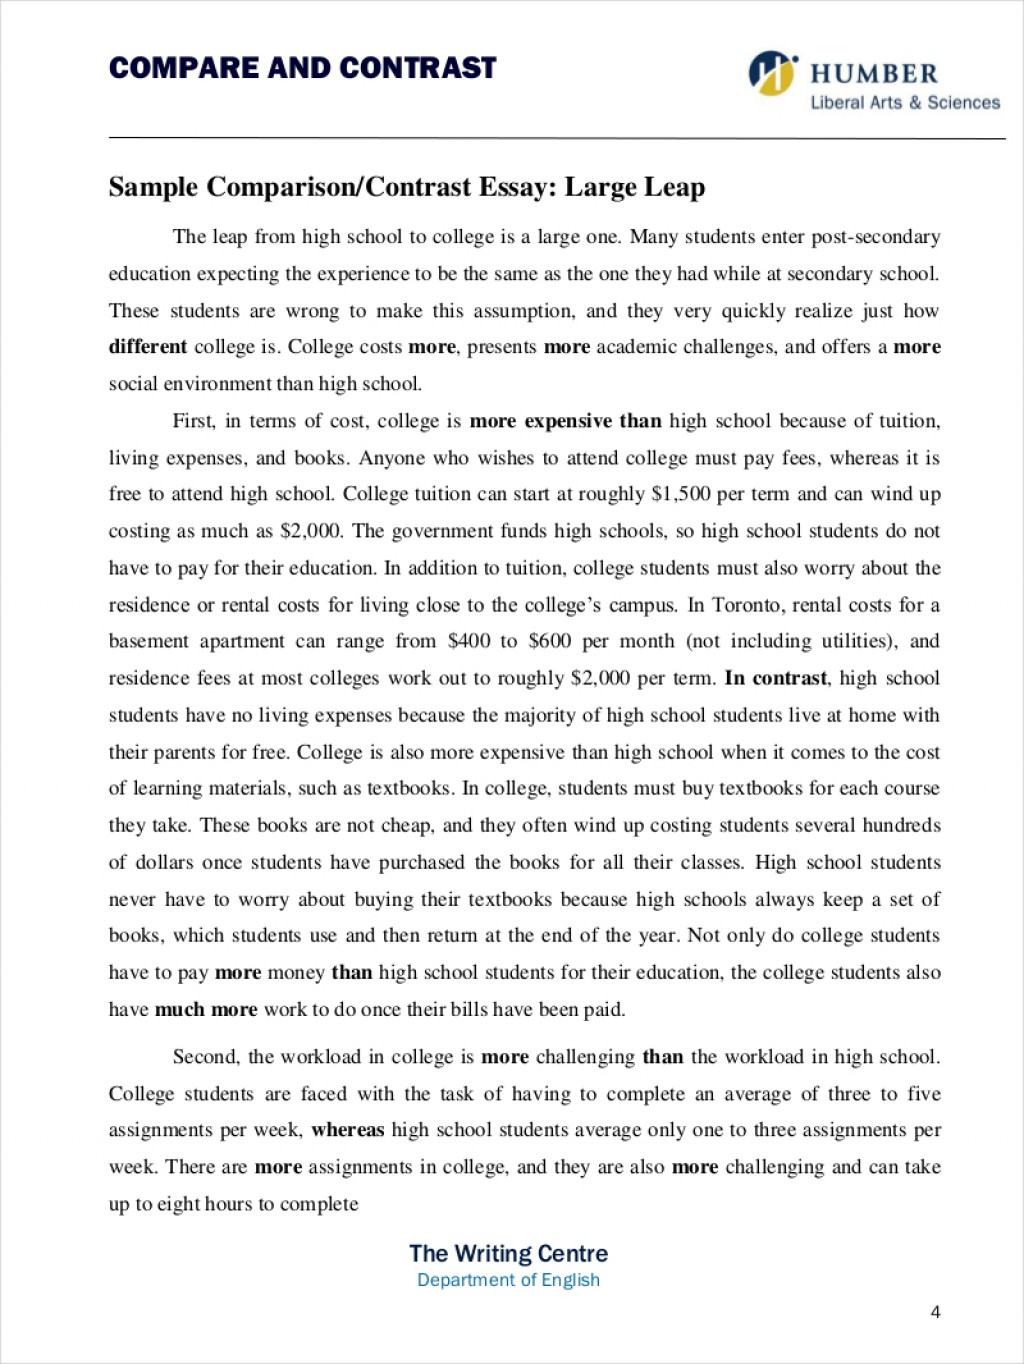 006 Compare And Contrast Essay Examples Comparative Samples Free Pdf Format Download Throughout Comparison Thesis Coles Thecolossus Co Within Ex 5th Grade 4th 6th 3rd Magnificent 9th For Elementary Students Topics Large